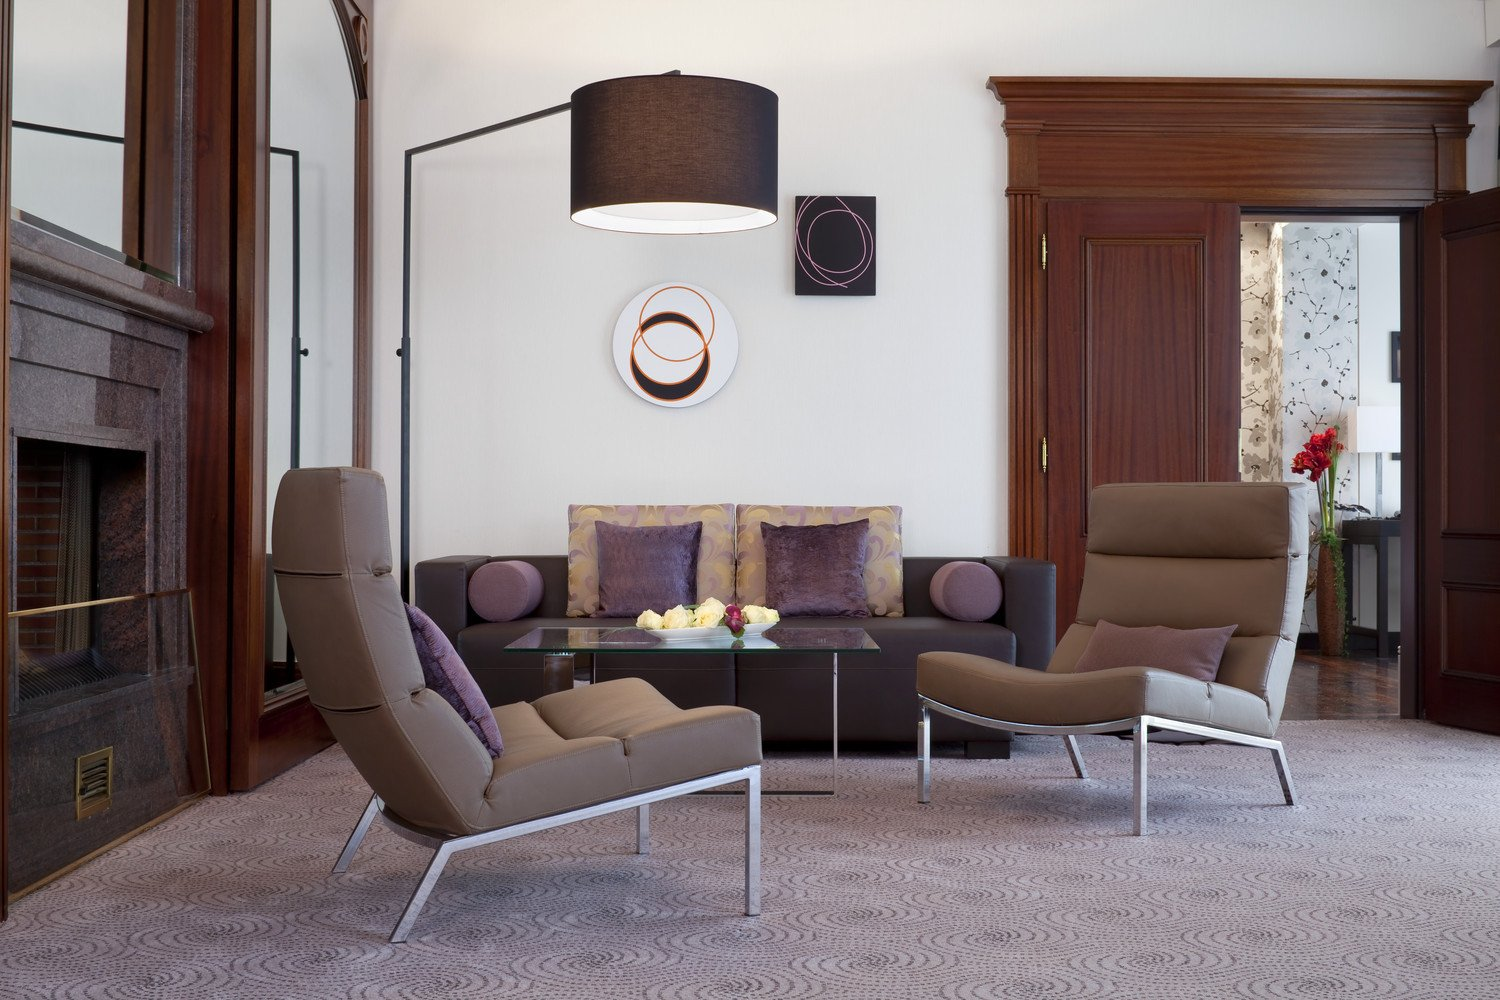 Comfortable Living Room Furniture New fortable Chairs for Living Room